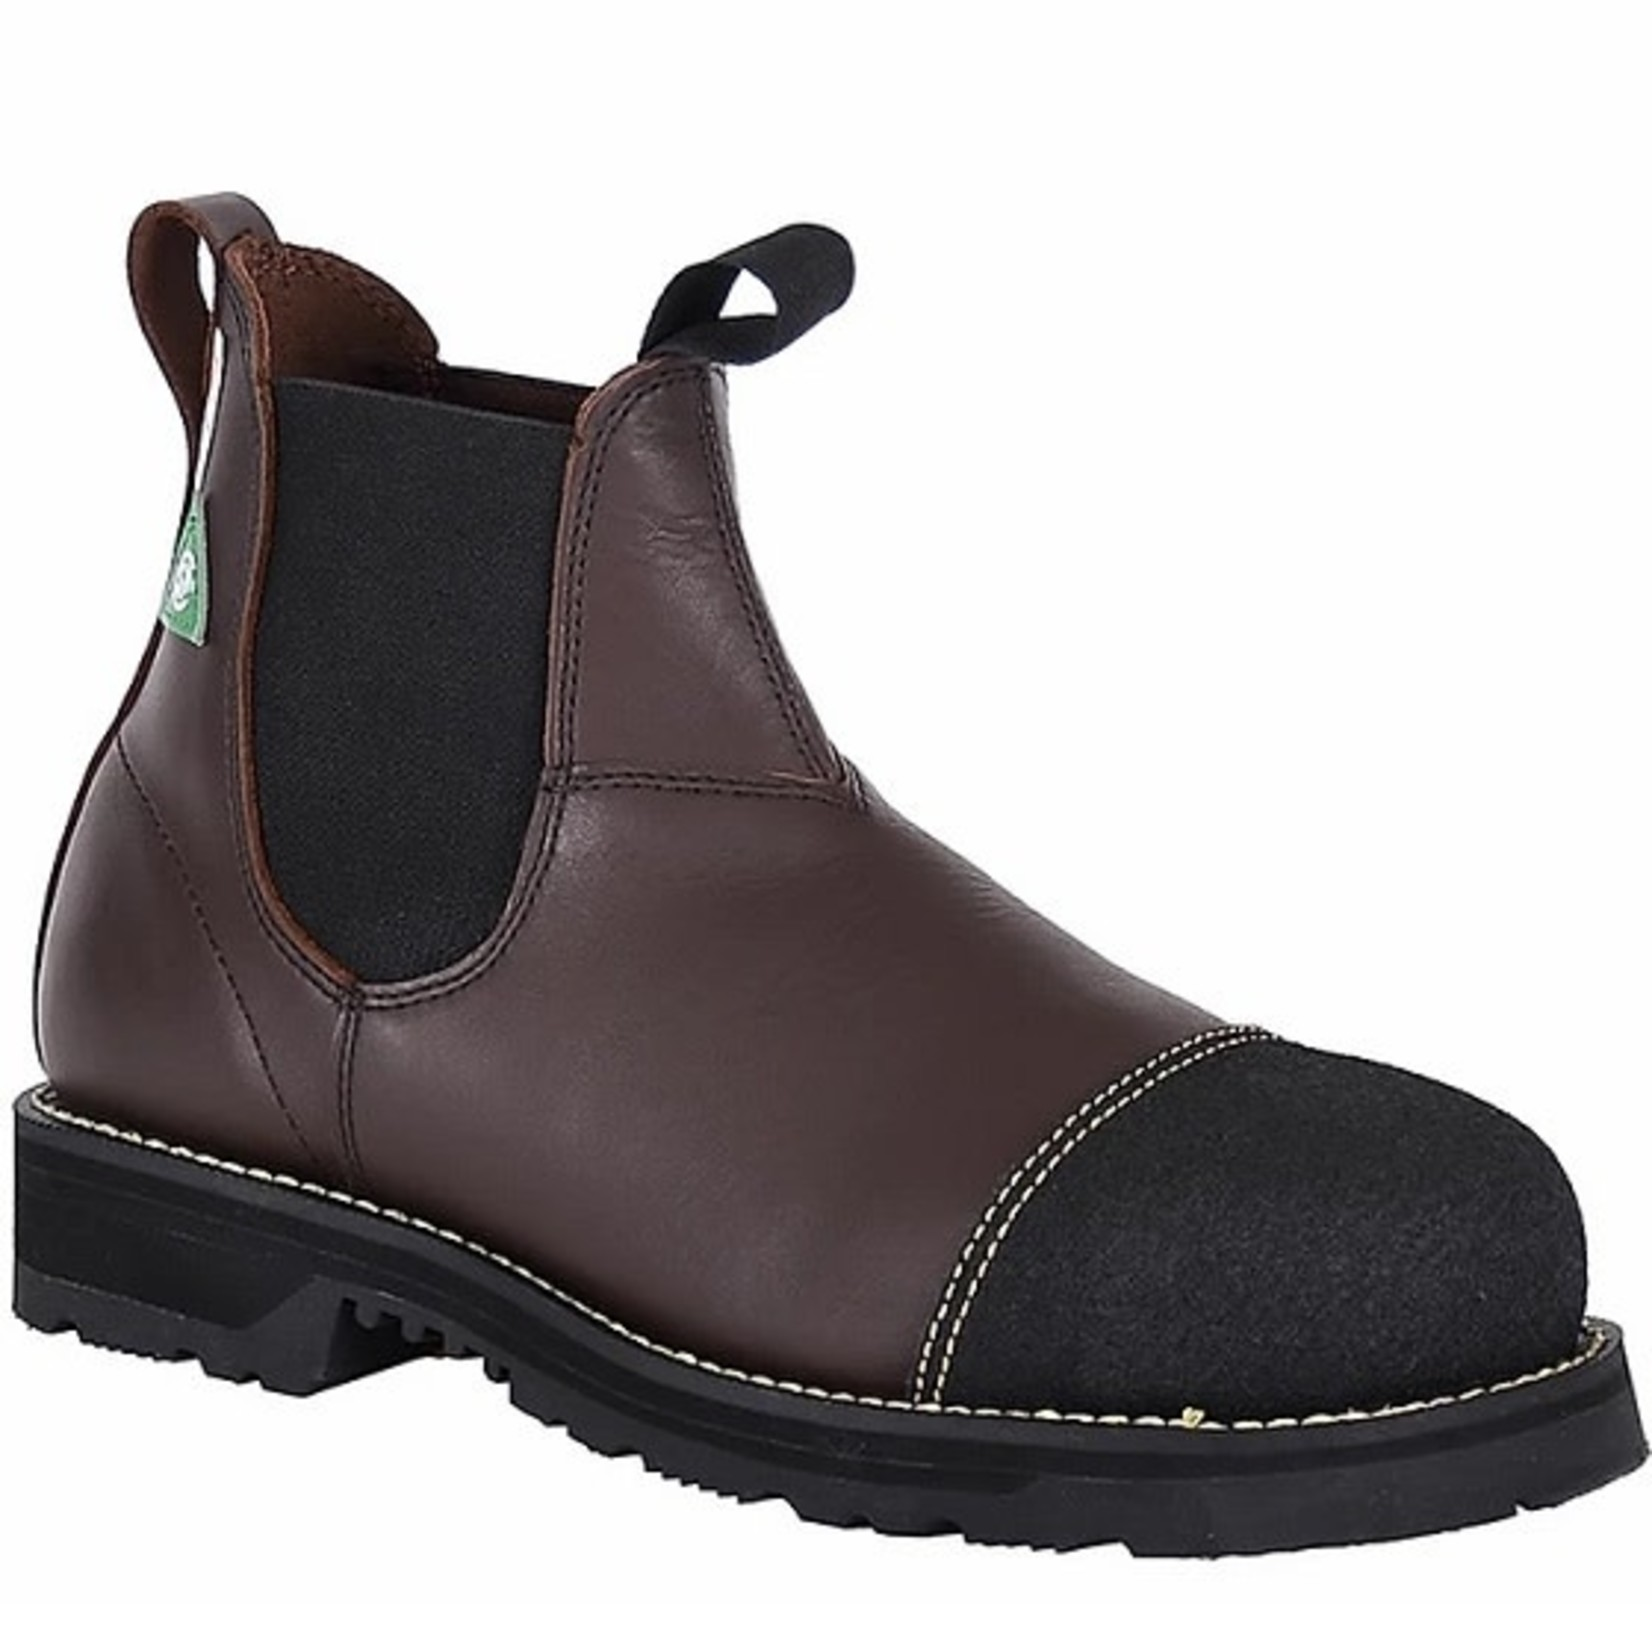 Canada West Canada West CSA Steel Toe Slip On Boot 34330 Brown